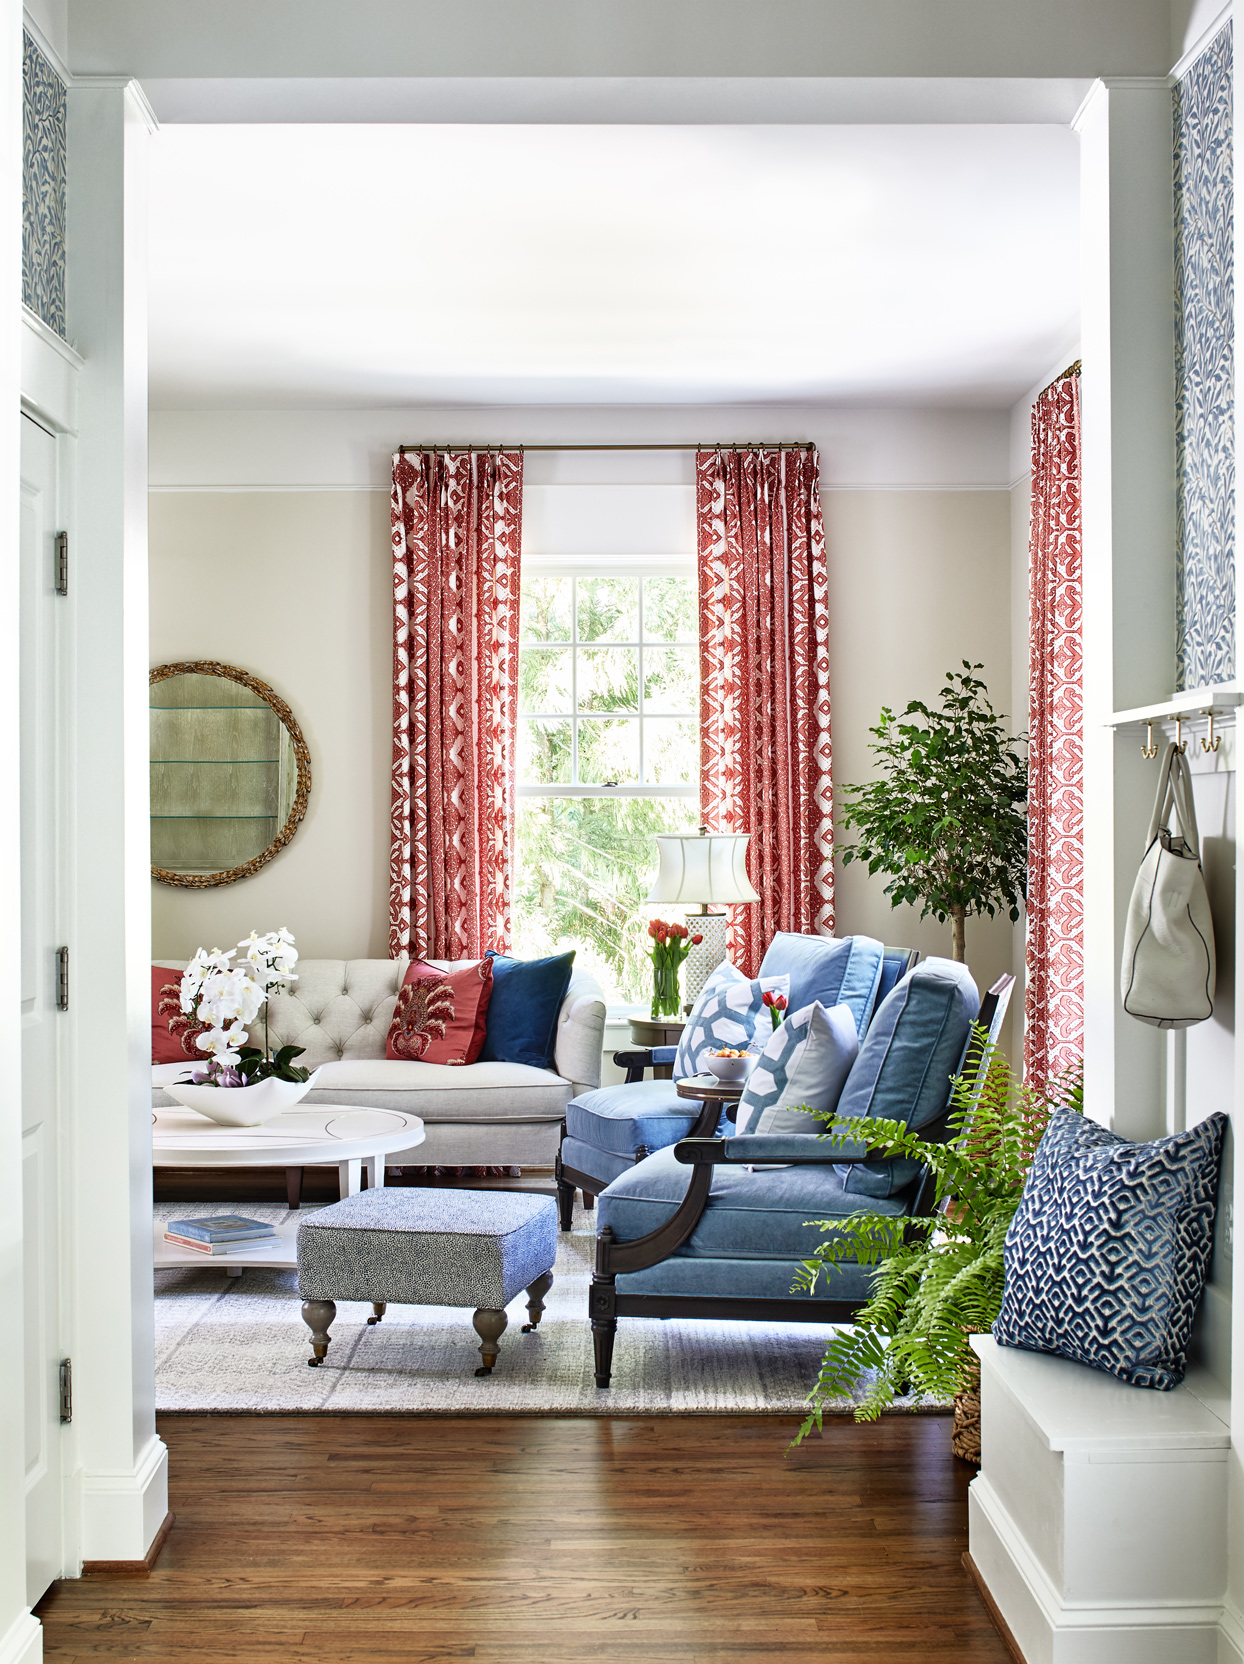 entryway overlooking neutral-colored living room with blue chairs and red accent pieces